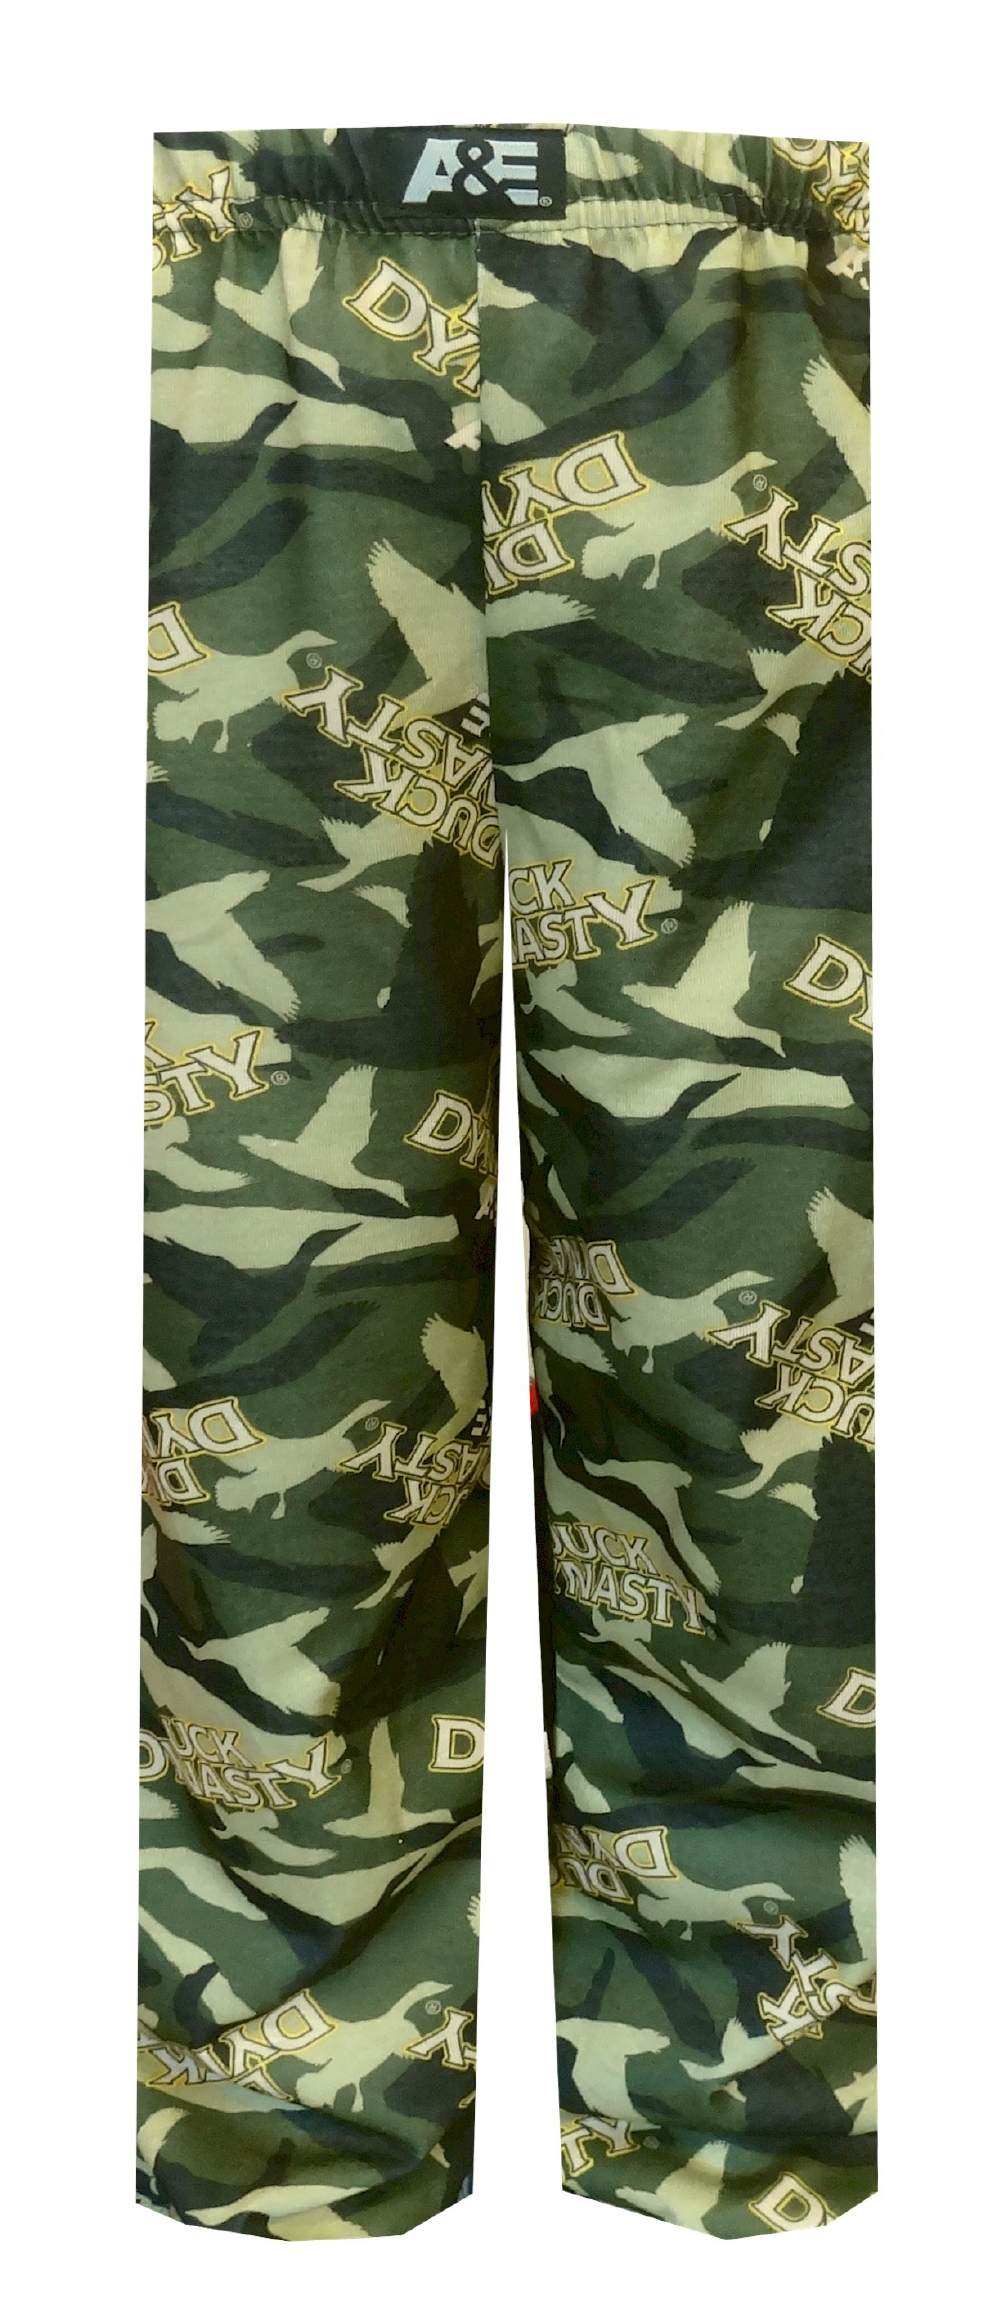 Image of Duck Dynasty Camo Boys Lounge Pants for boys